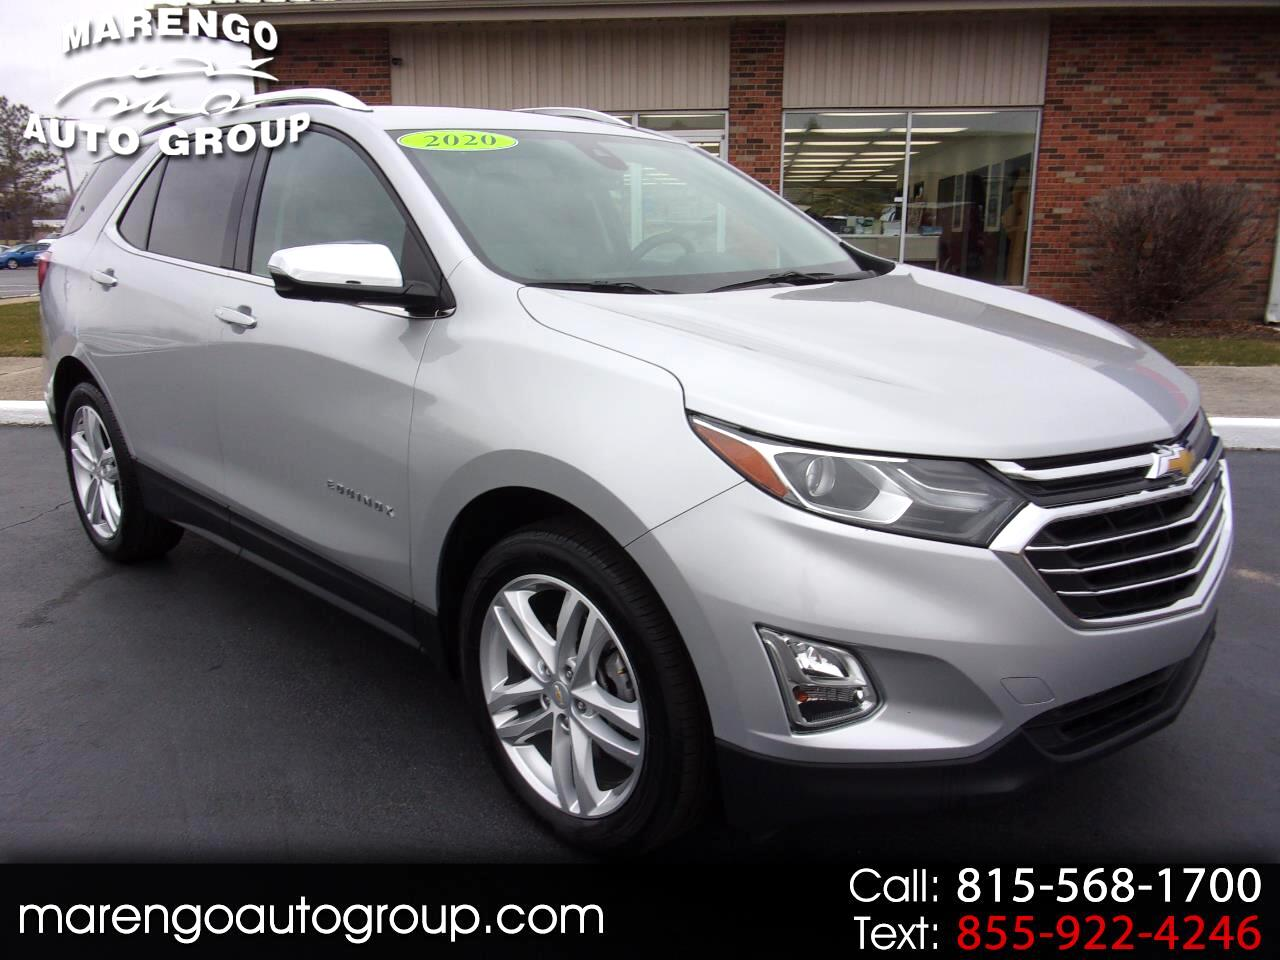 used 2020 Chevrolet Equinox car, priced at $29,996